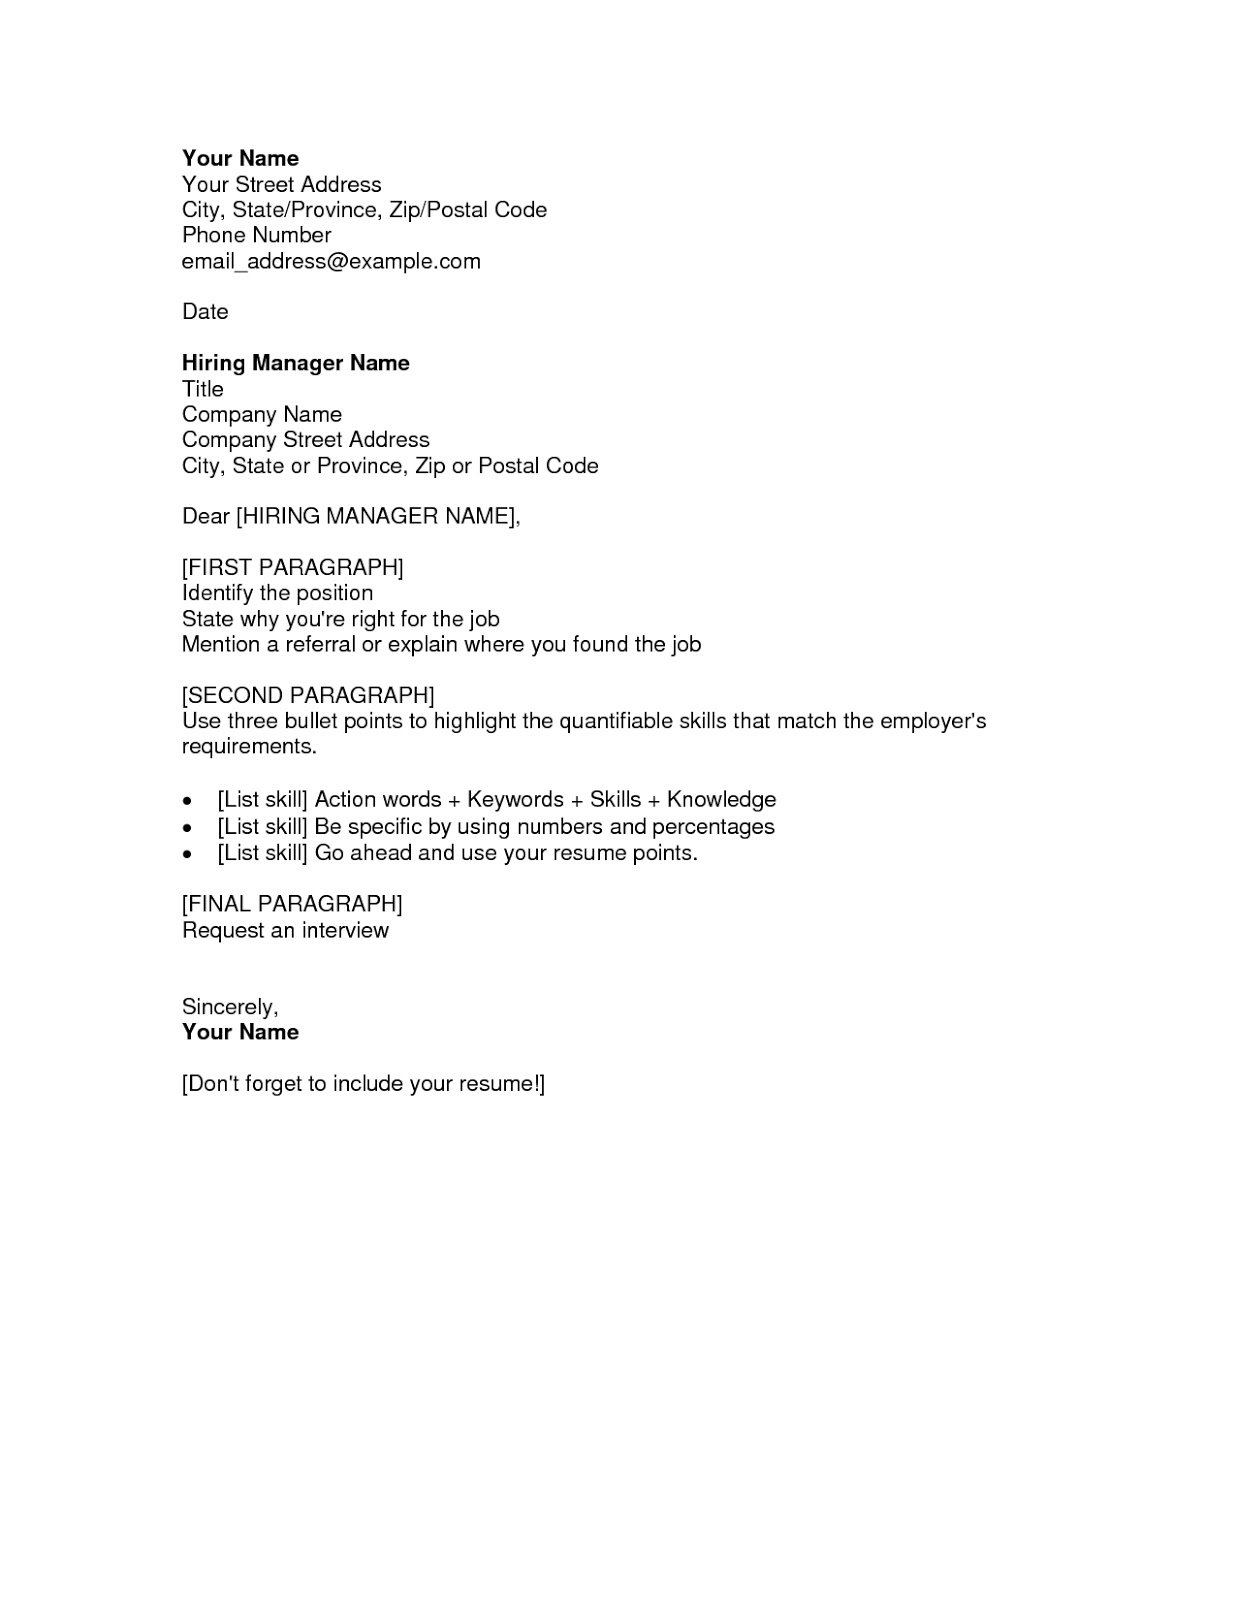 Cover letter with resume examples